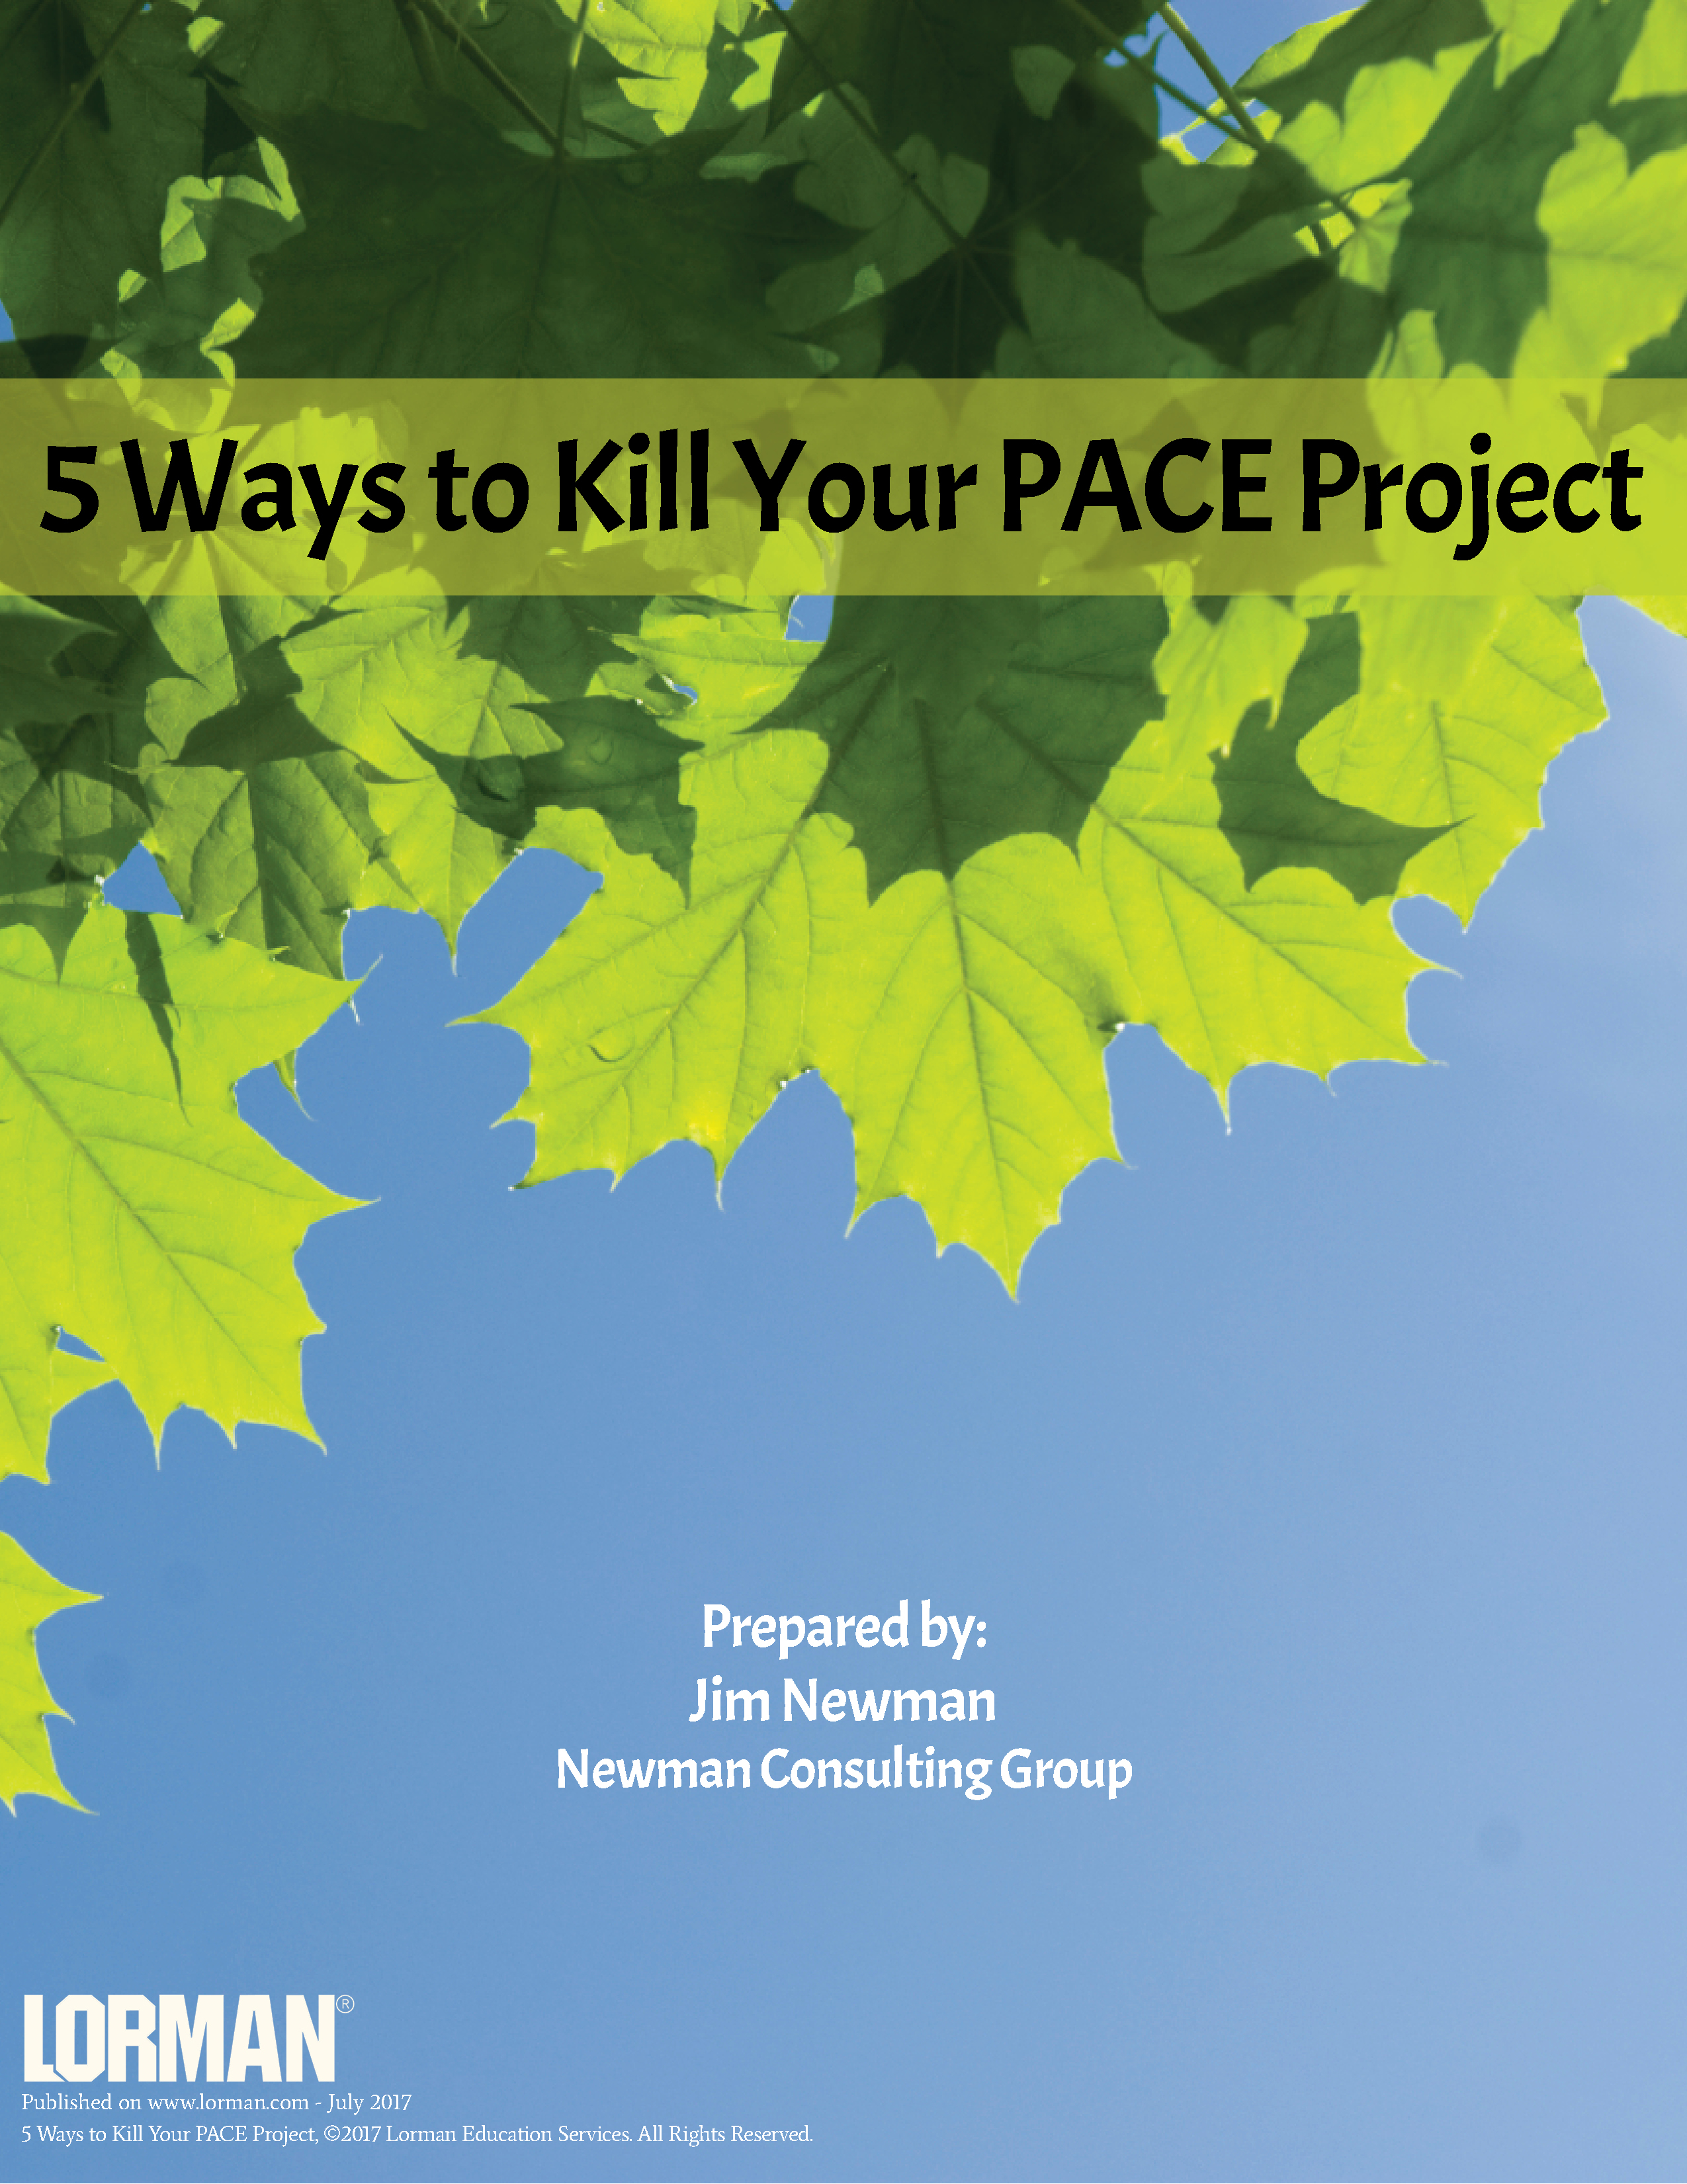 5 Ways to Kill Your PACE Project